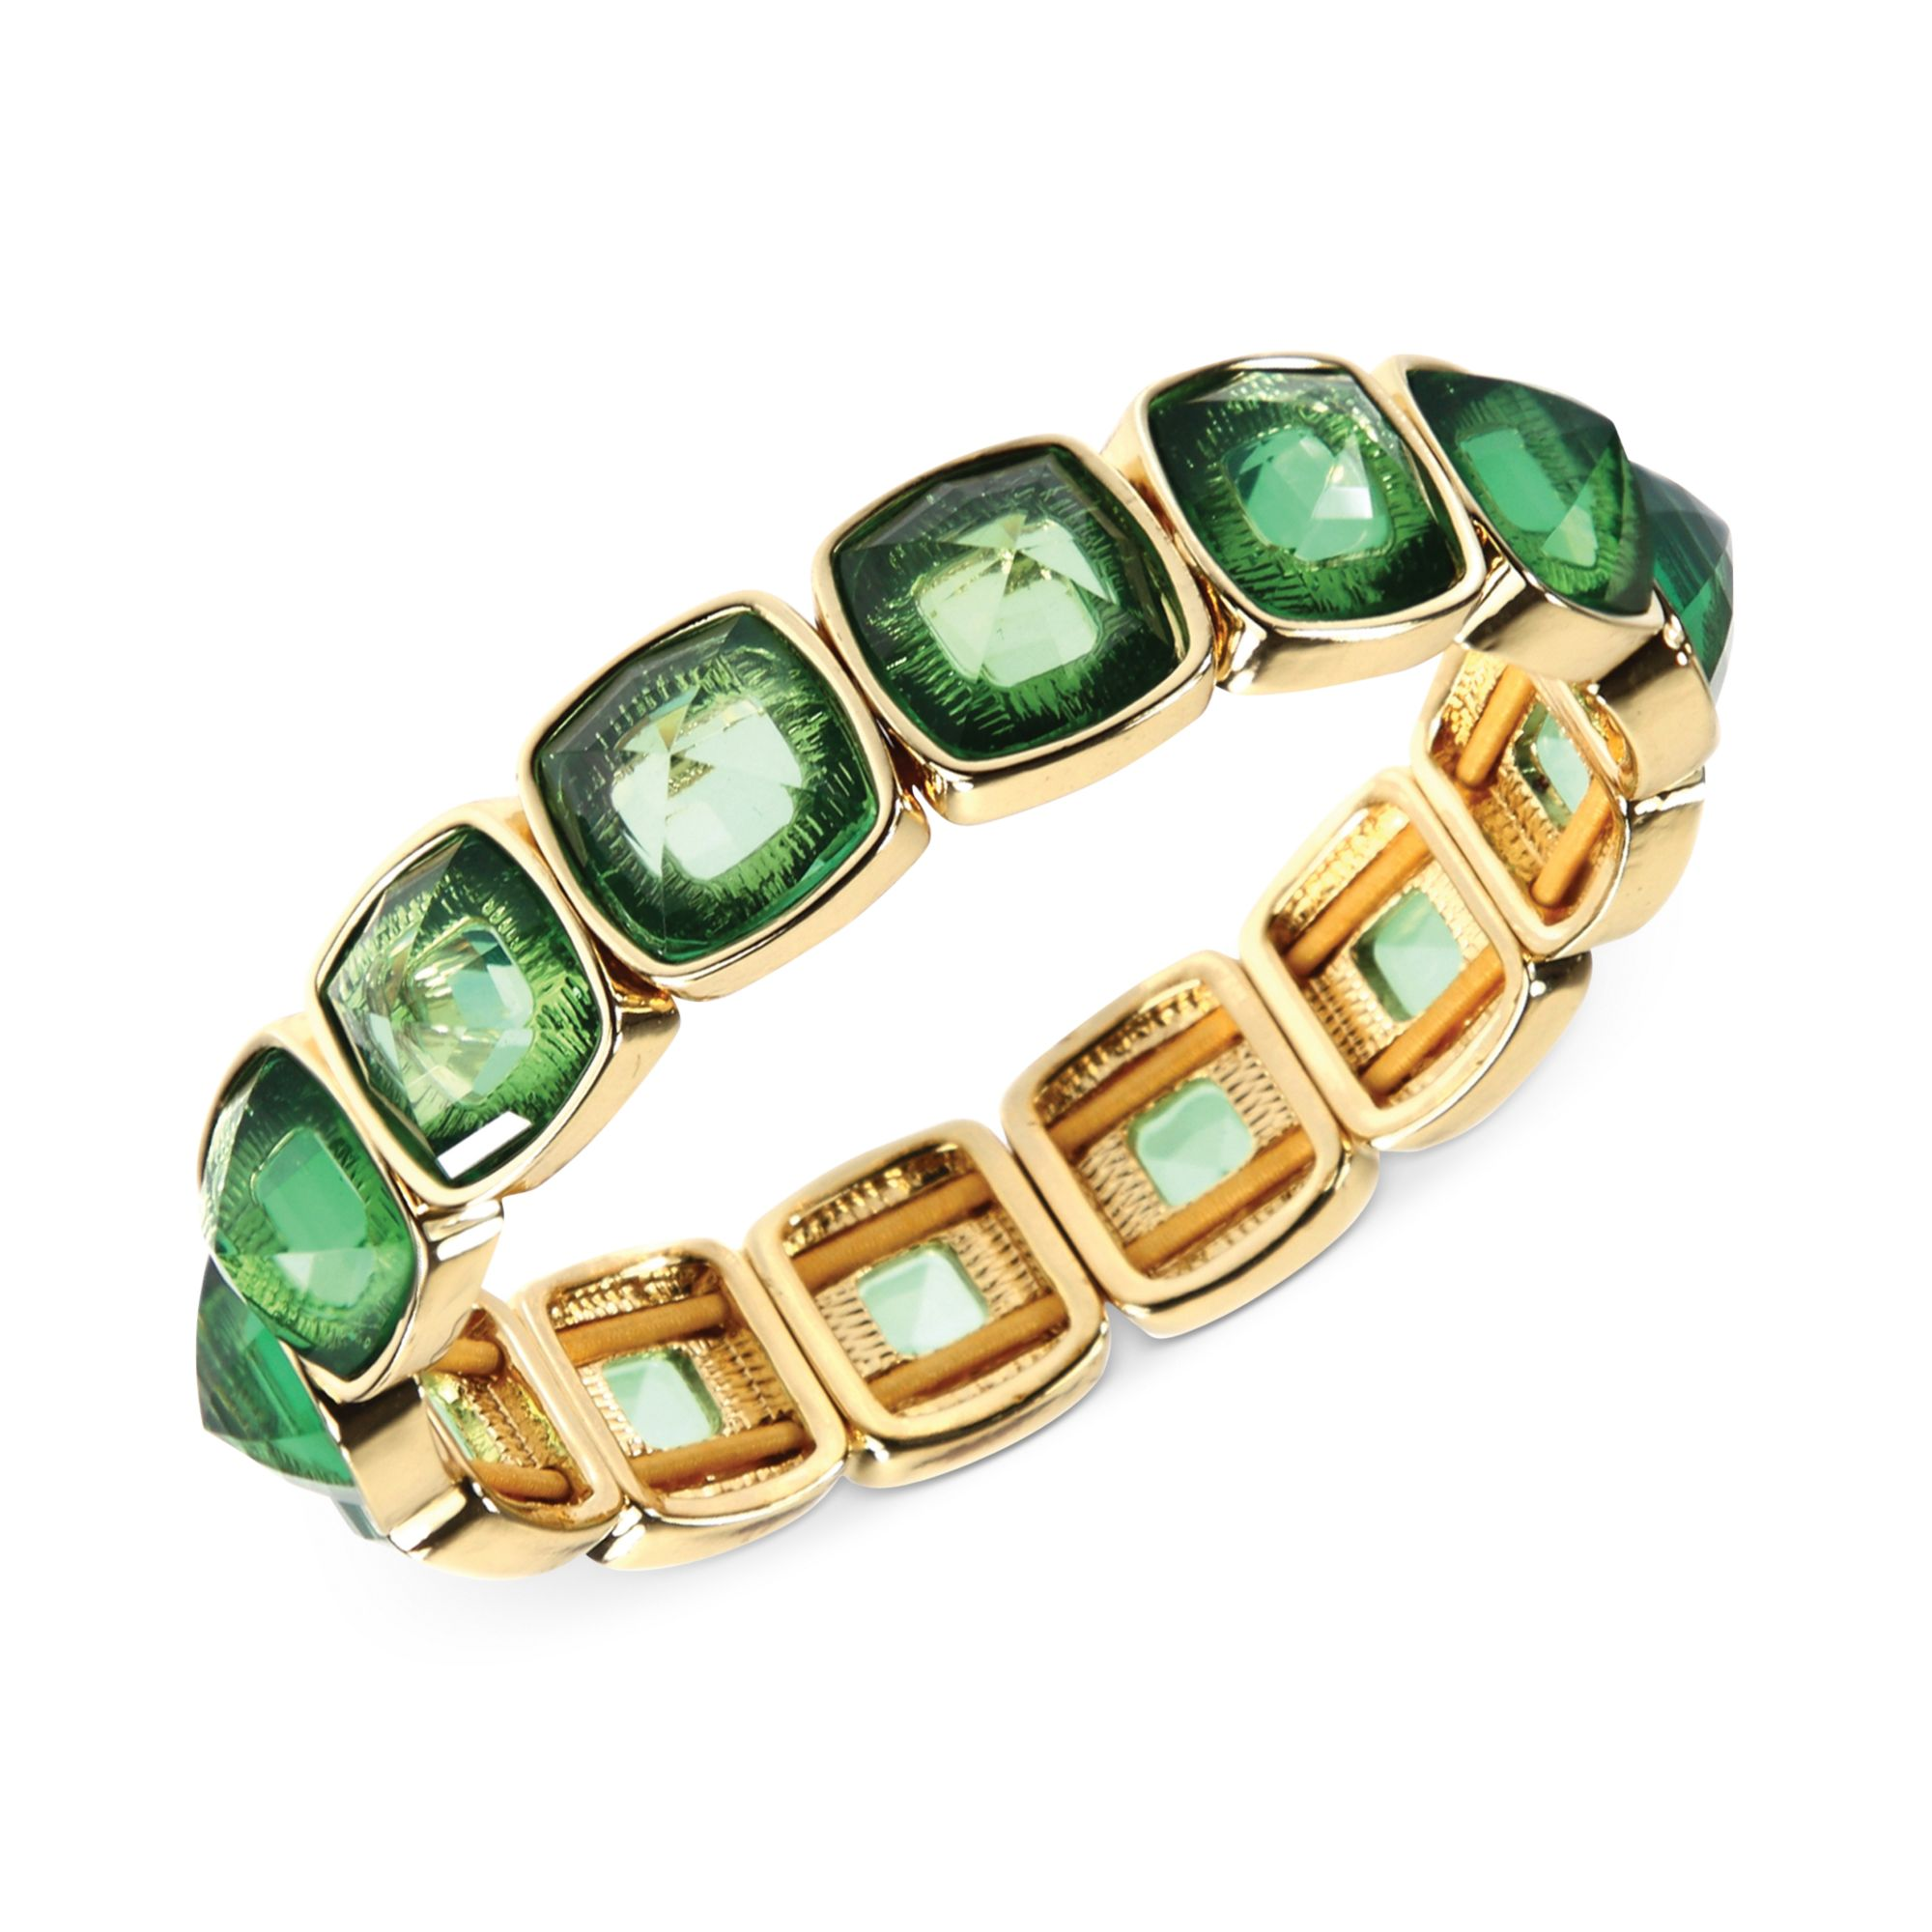 design content thick finish metal size gold stone traditional img green bangles american diamond